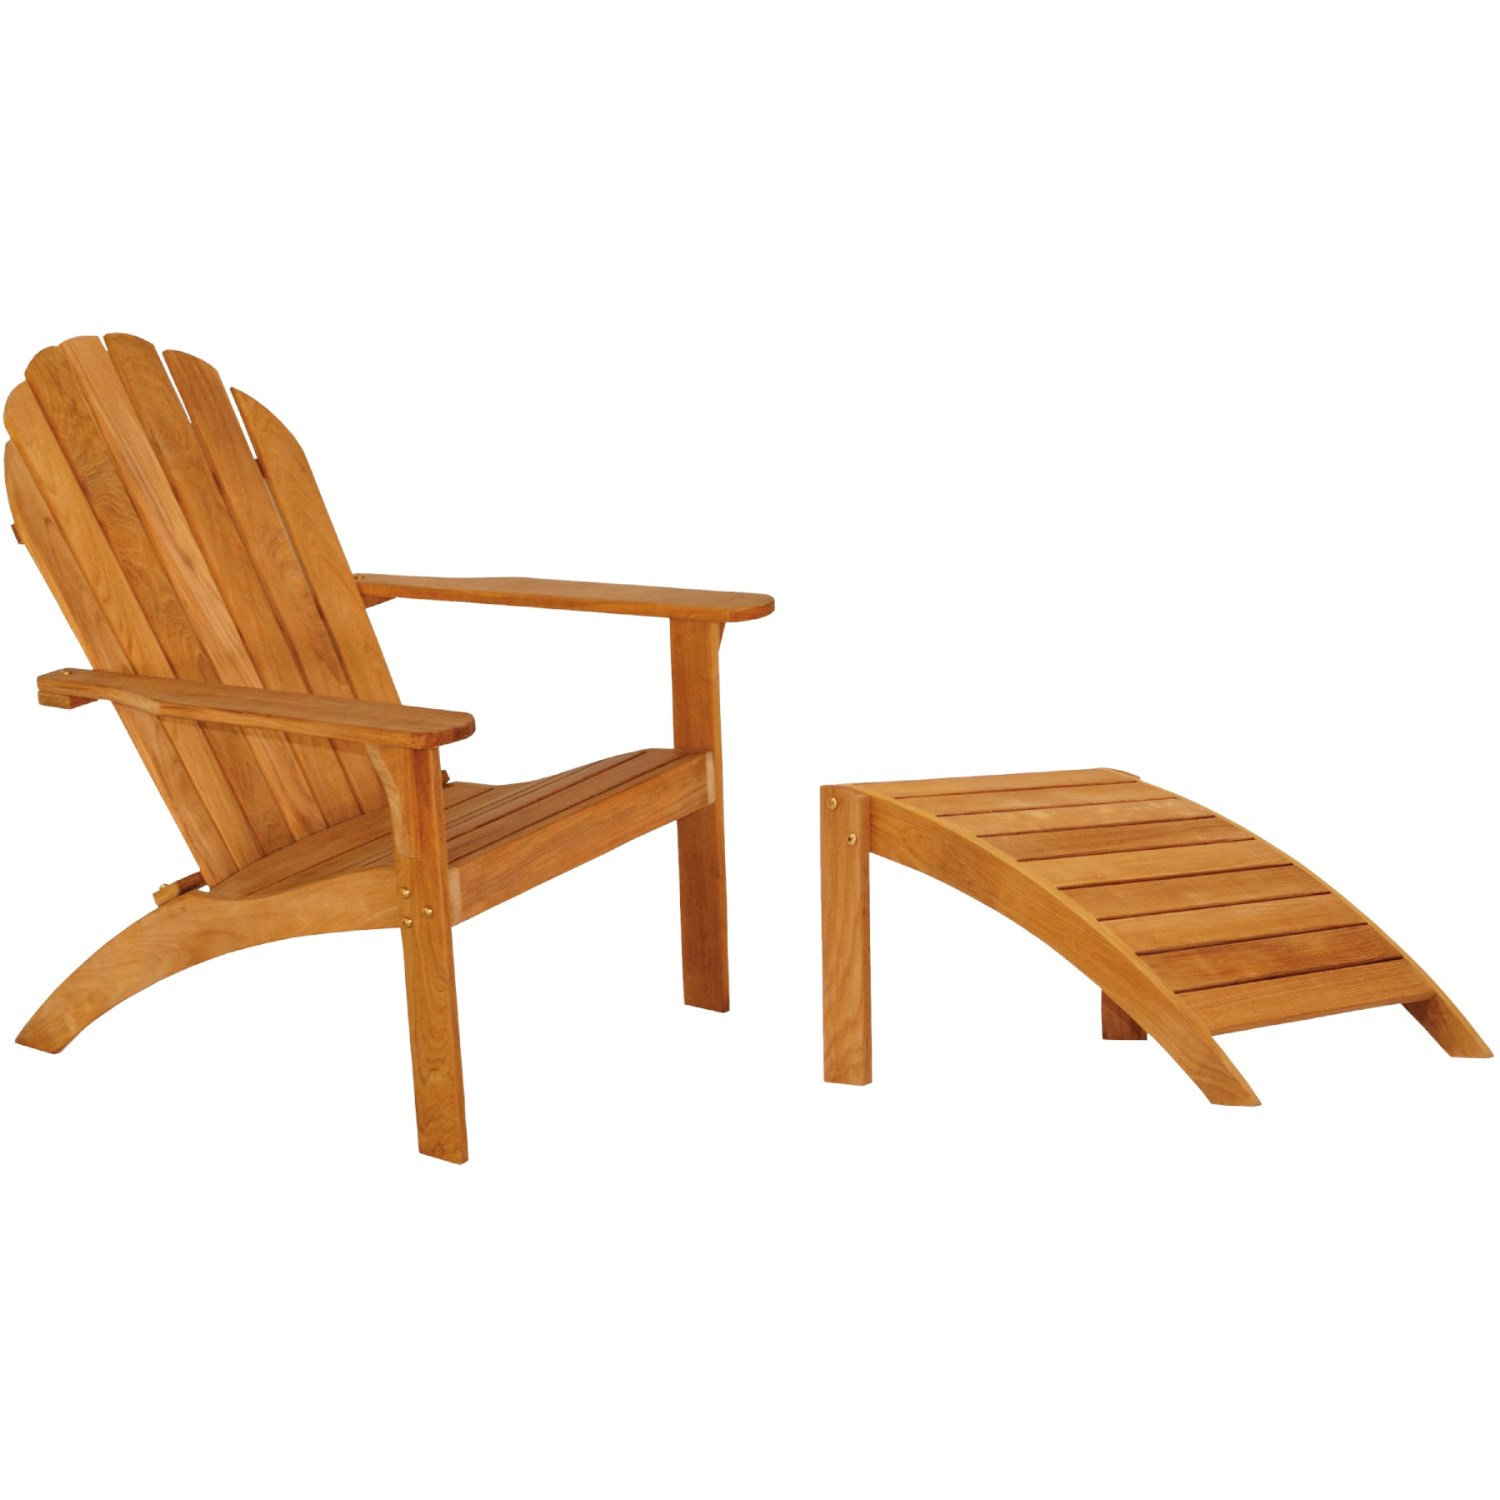 Three birds casual adirondack chair and footstool teak